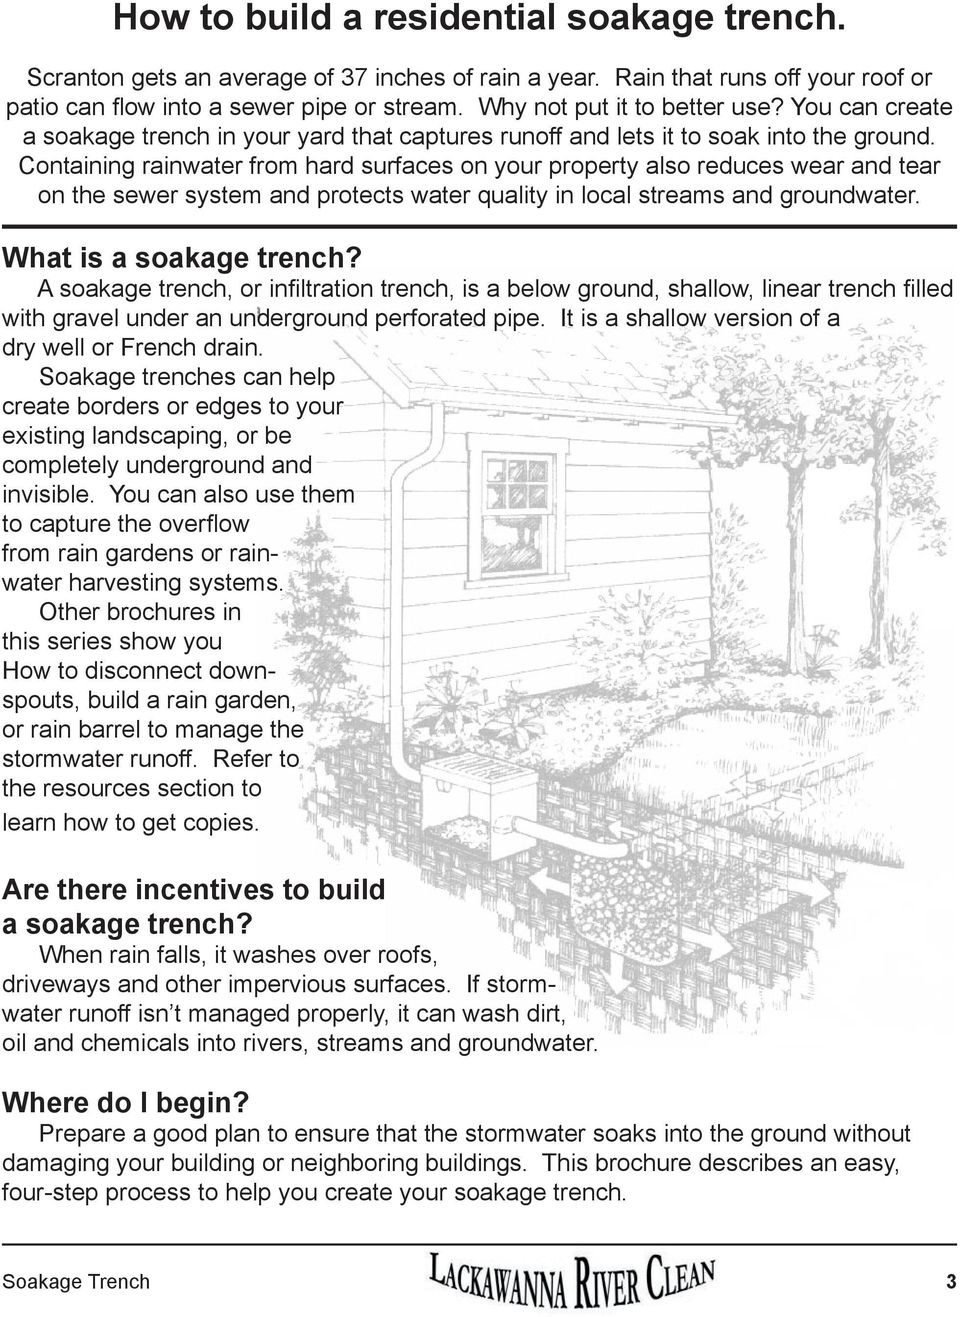 Containing rainwater from hard surfaces on your property also reduces wear and tear on the sewer system and protects water quality in local streams and groundwater. What is a soakage trench?